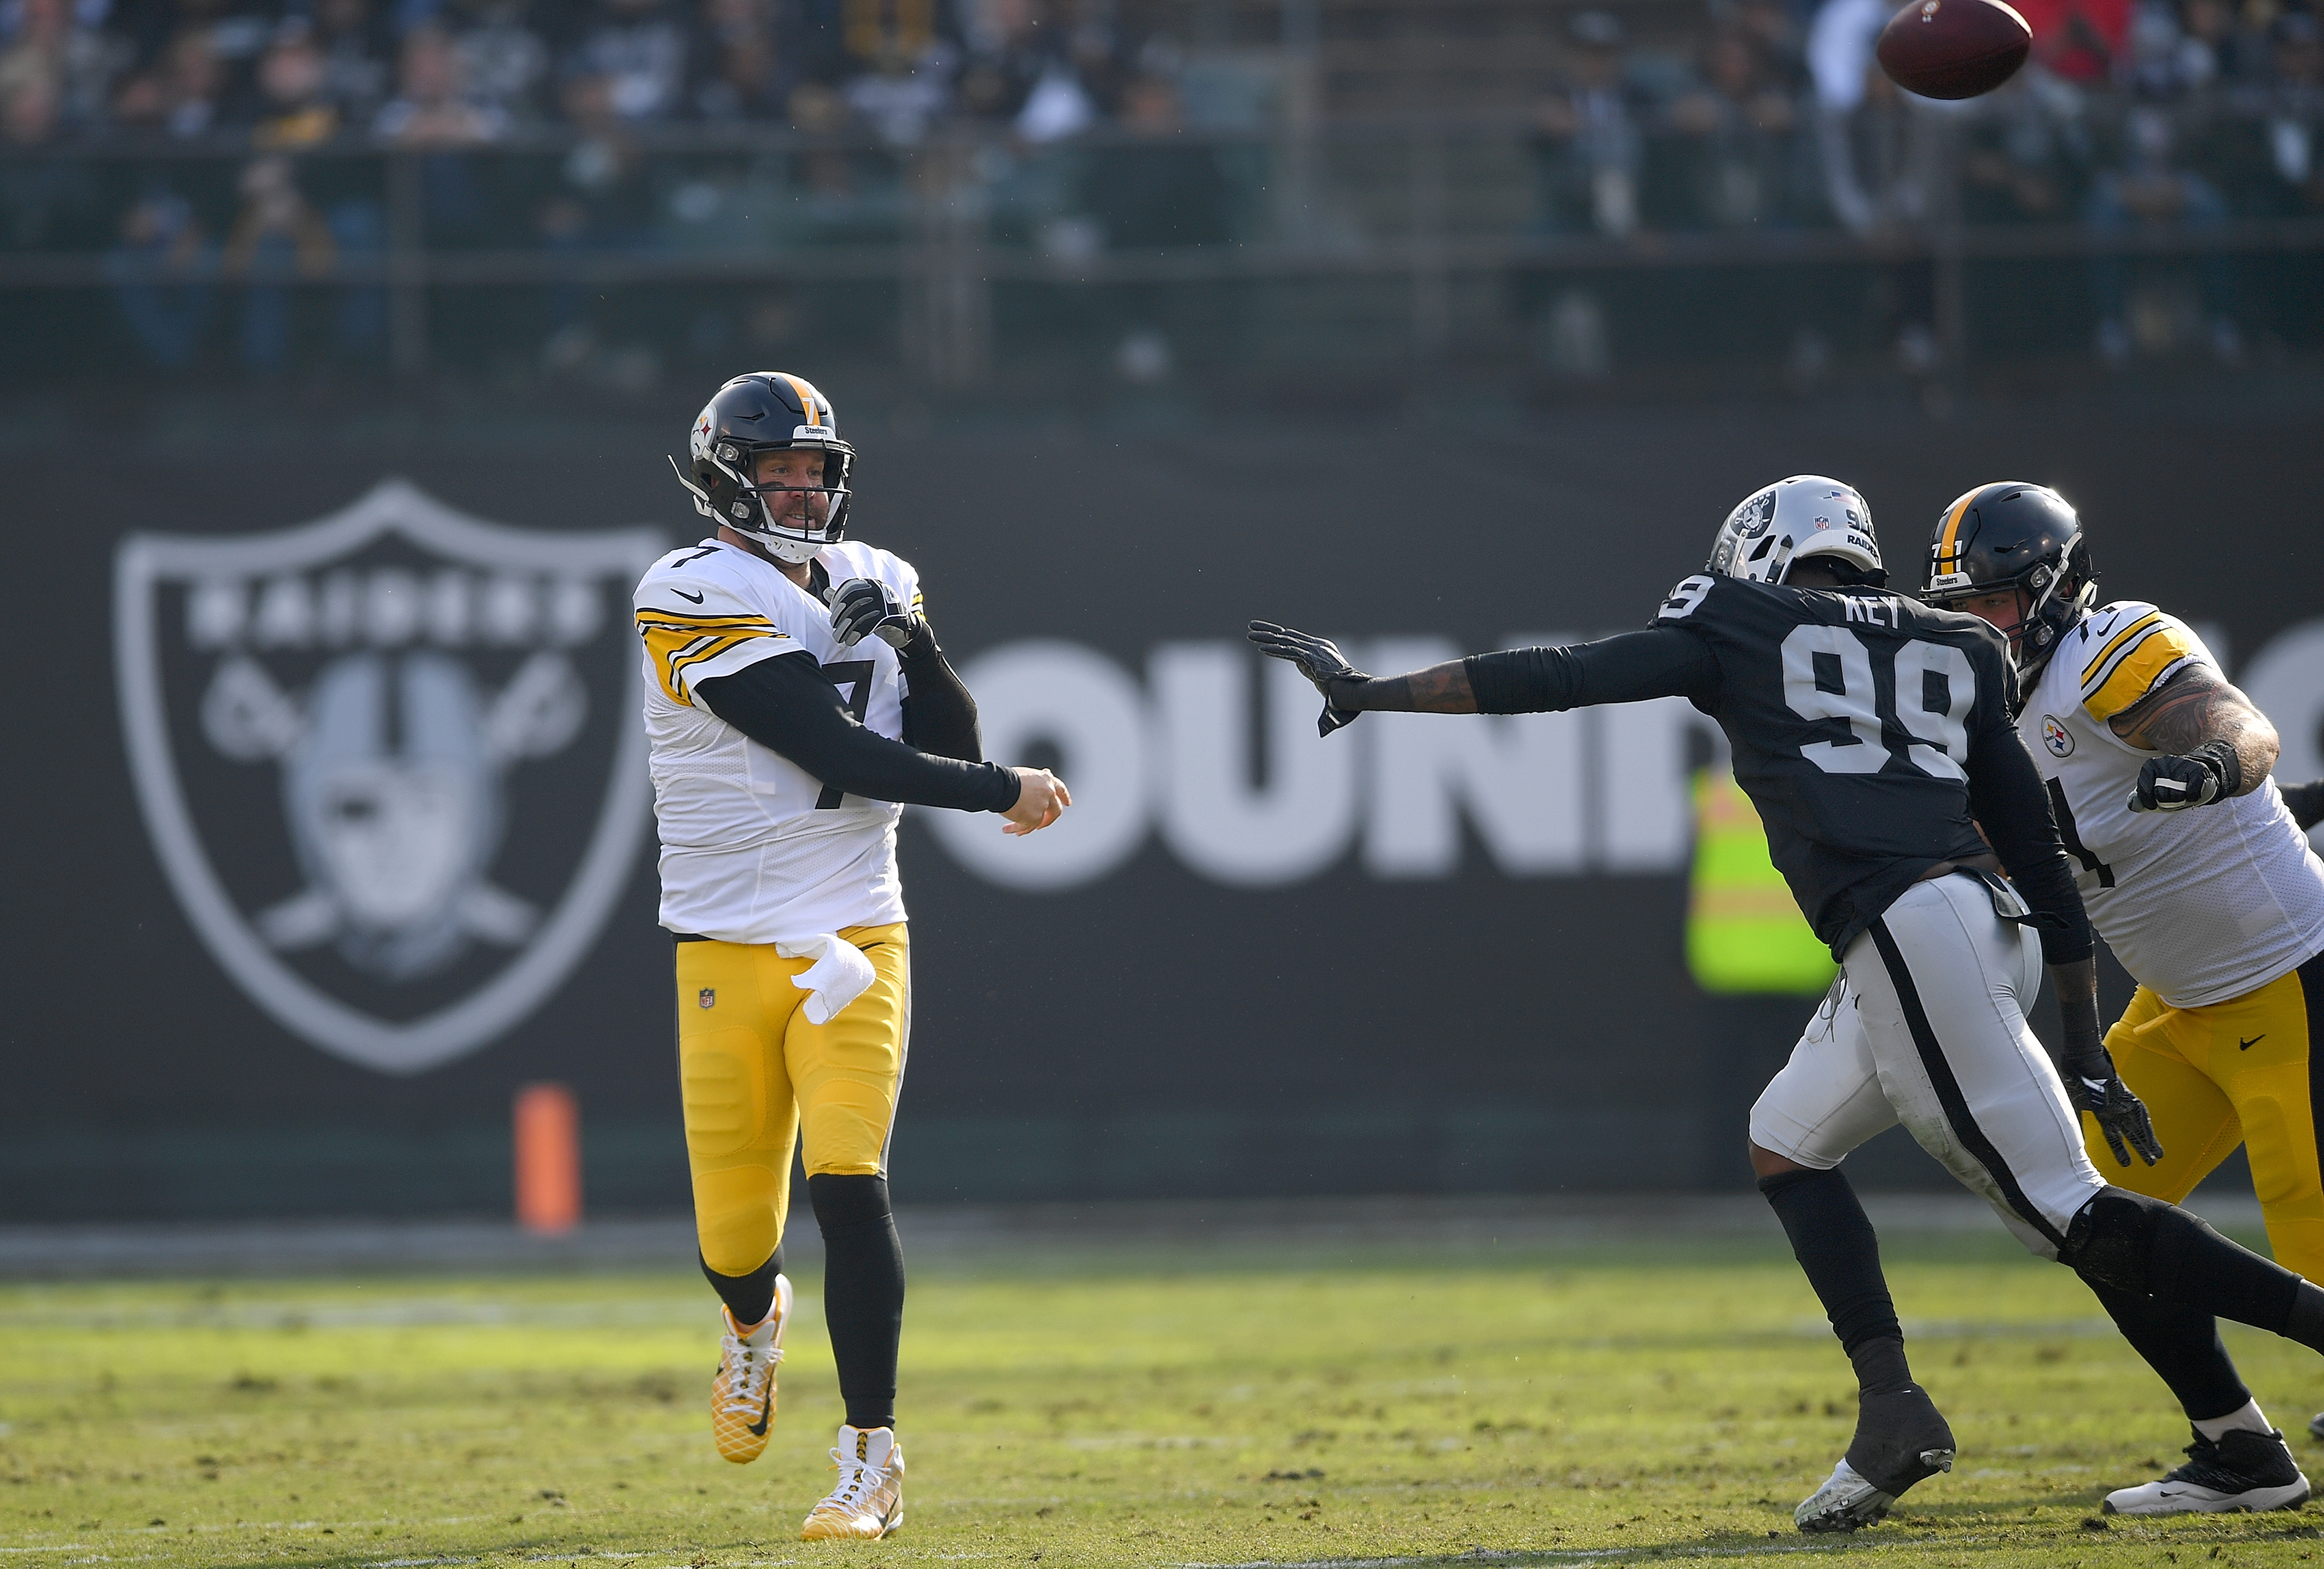 Ben Roethlisberger #7 of the Pittsburgh Steelers throws a pass against the Oakland Raiders during the first half of their NFL football game at Oakland-Alameda County Coliseum on December 9, 2018 in Oakland, California.